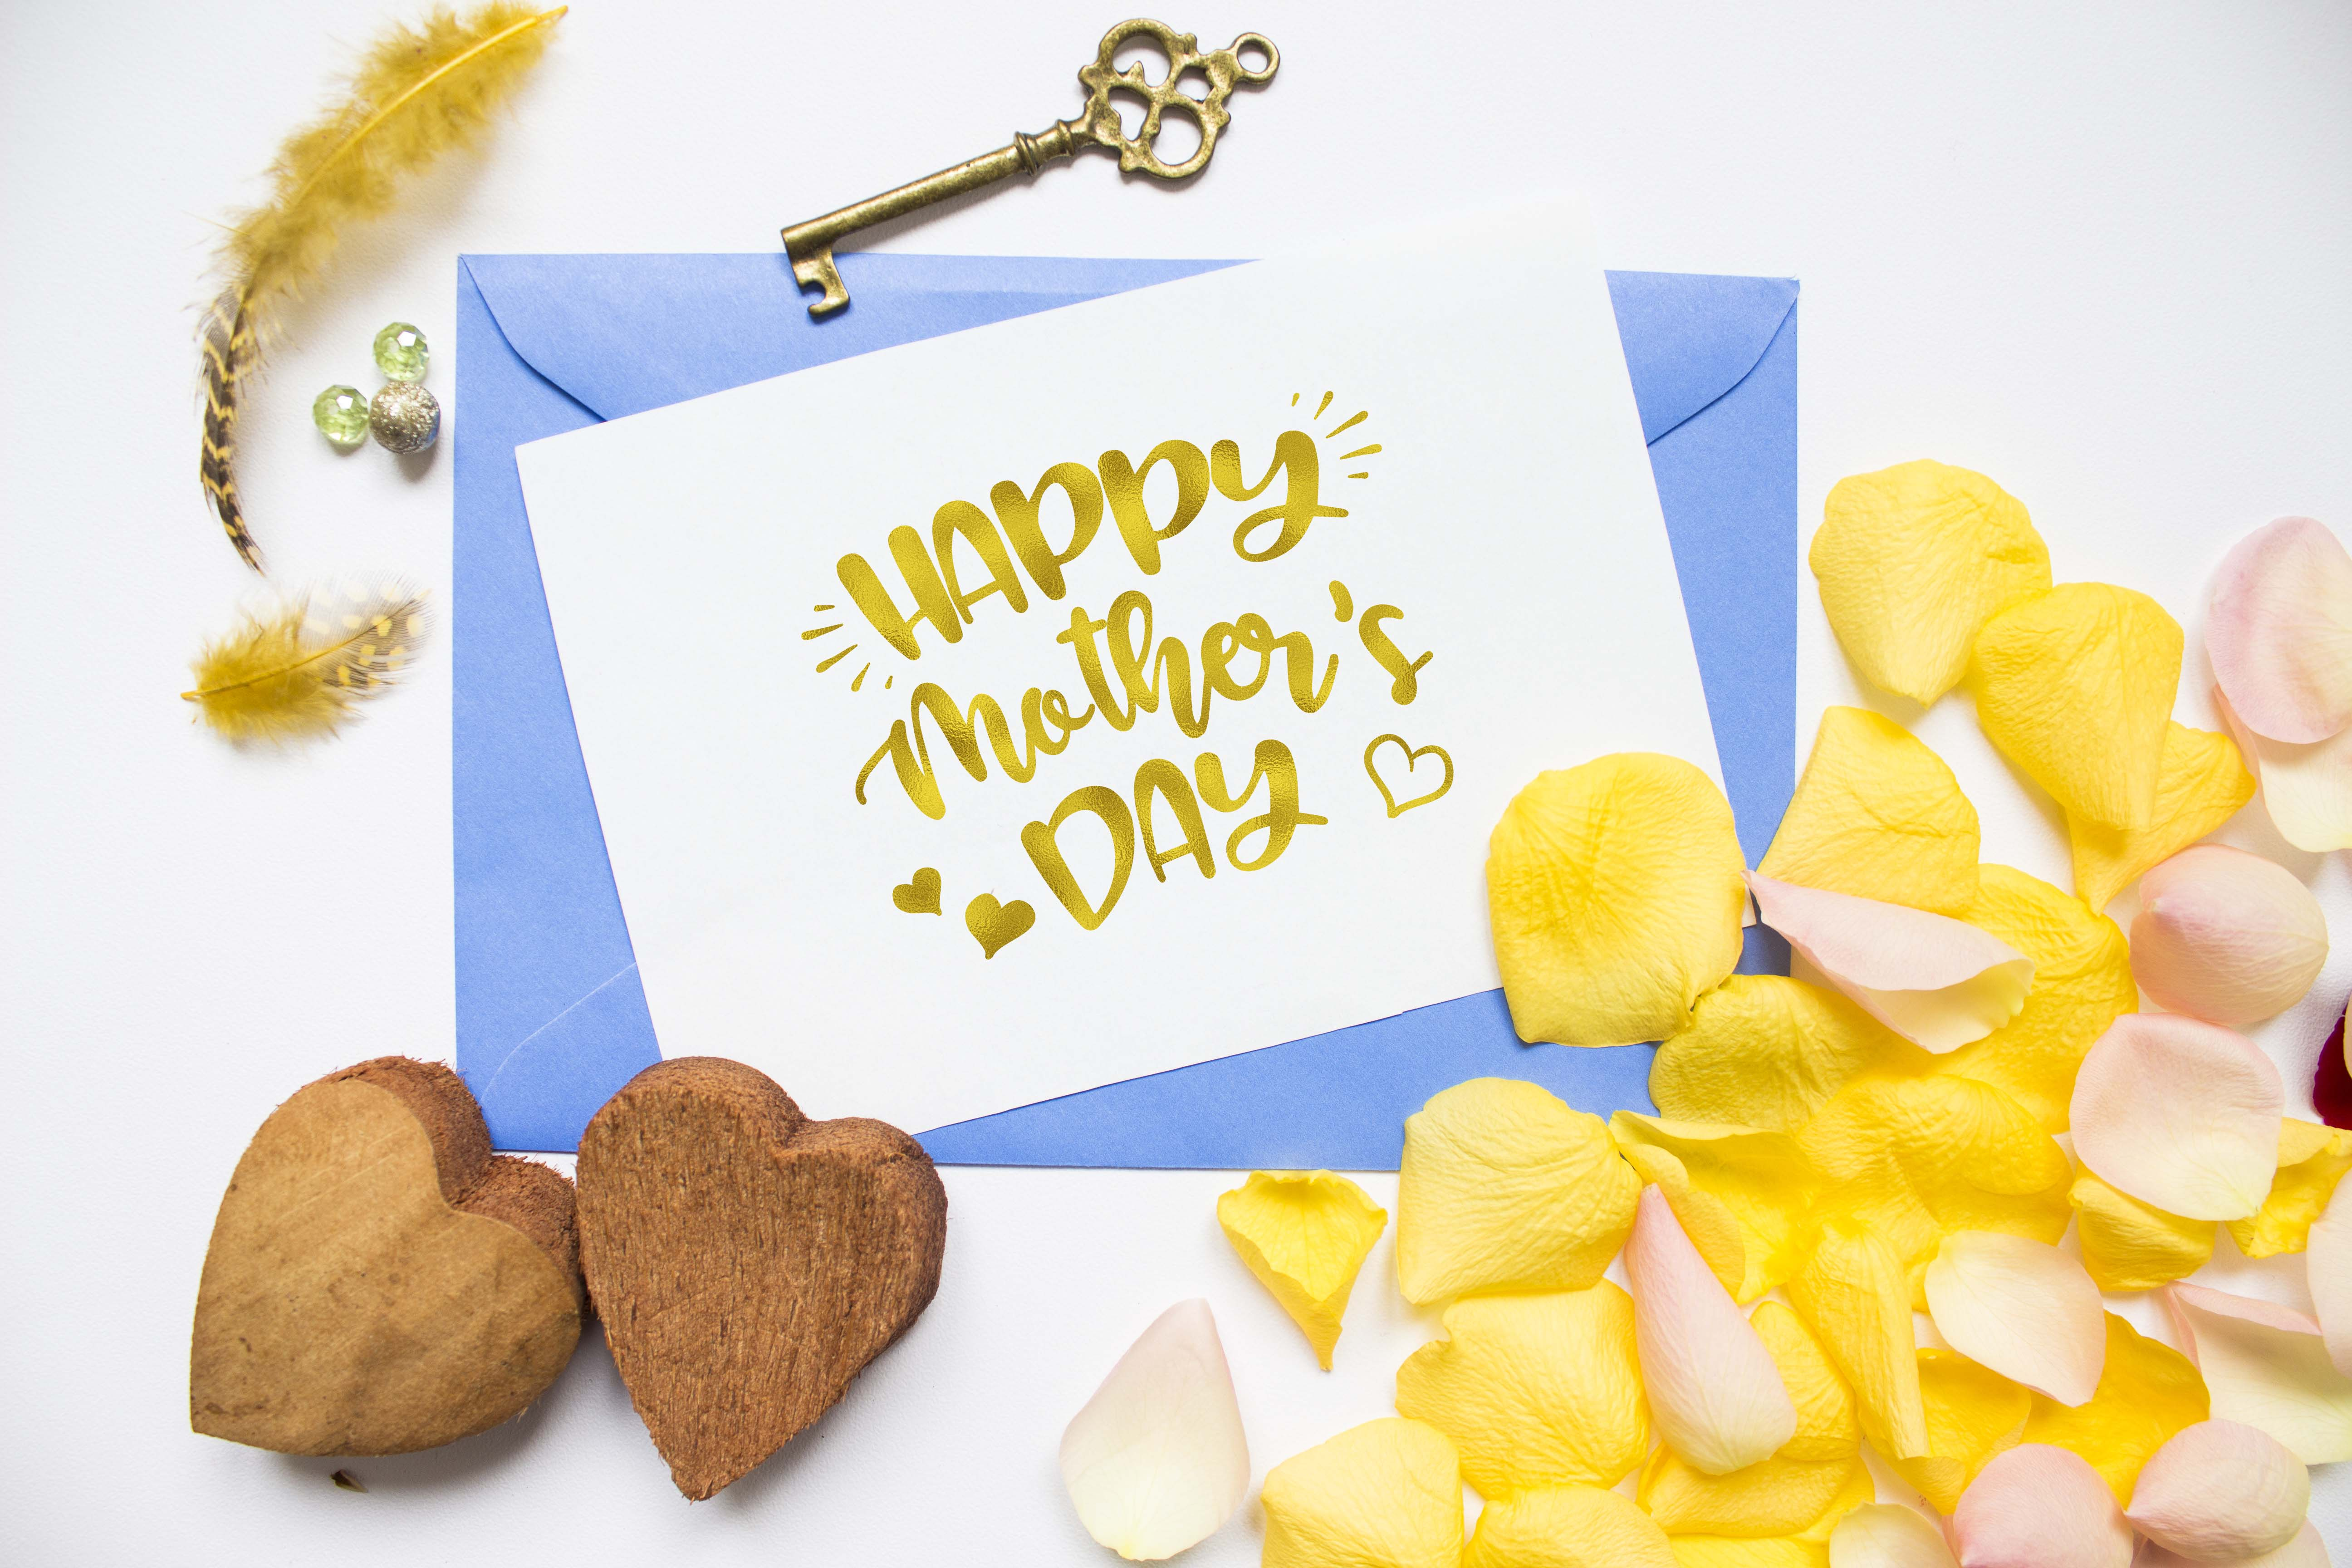 Happy mother's day SVG PNG EPS DXF, Mother svg cutting file example image 2